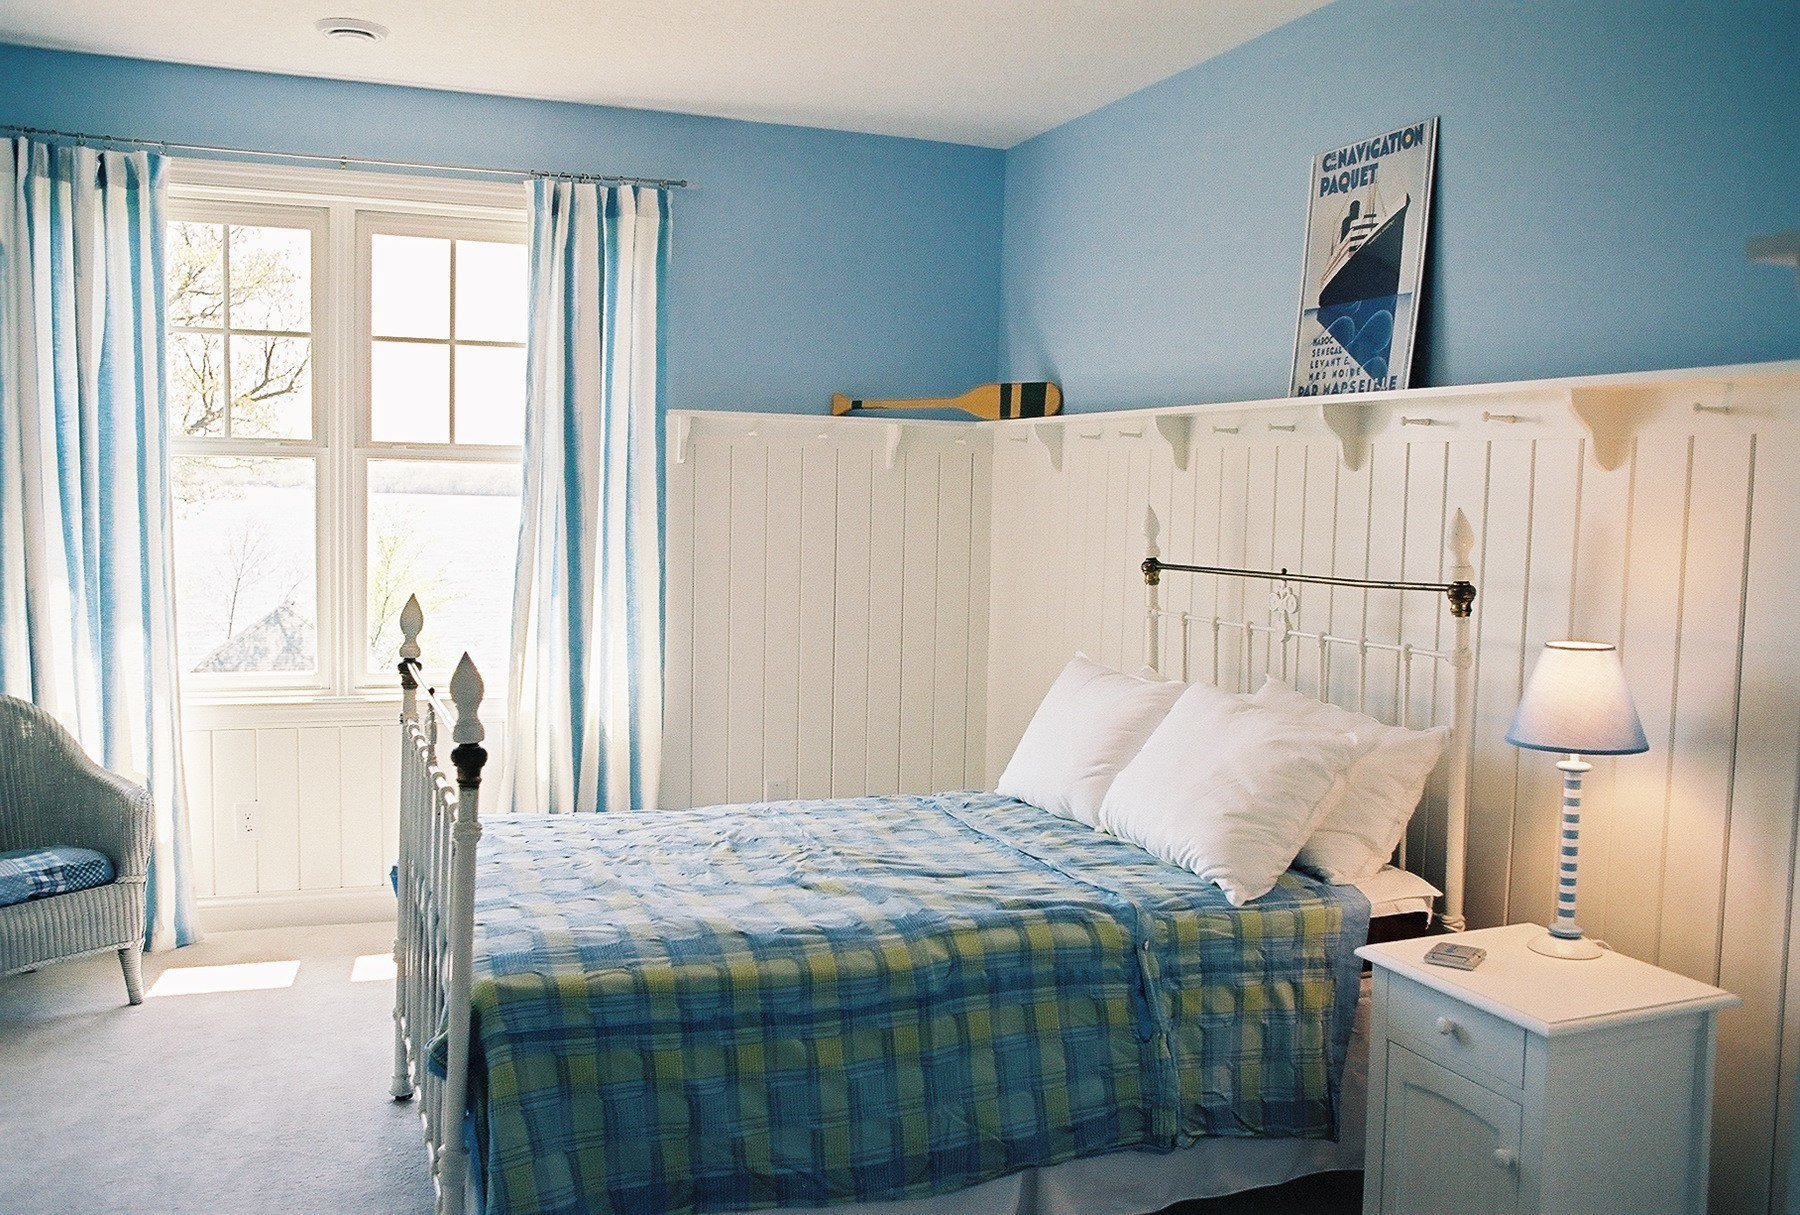 Best 16 Beautiful Examples Of Light Blue Walls In A Bedroom This Designed That With Pictures